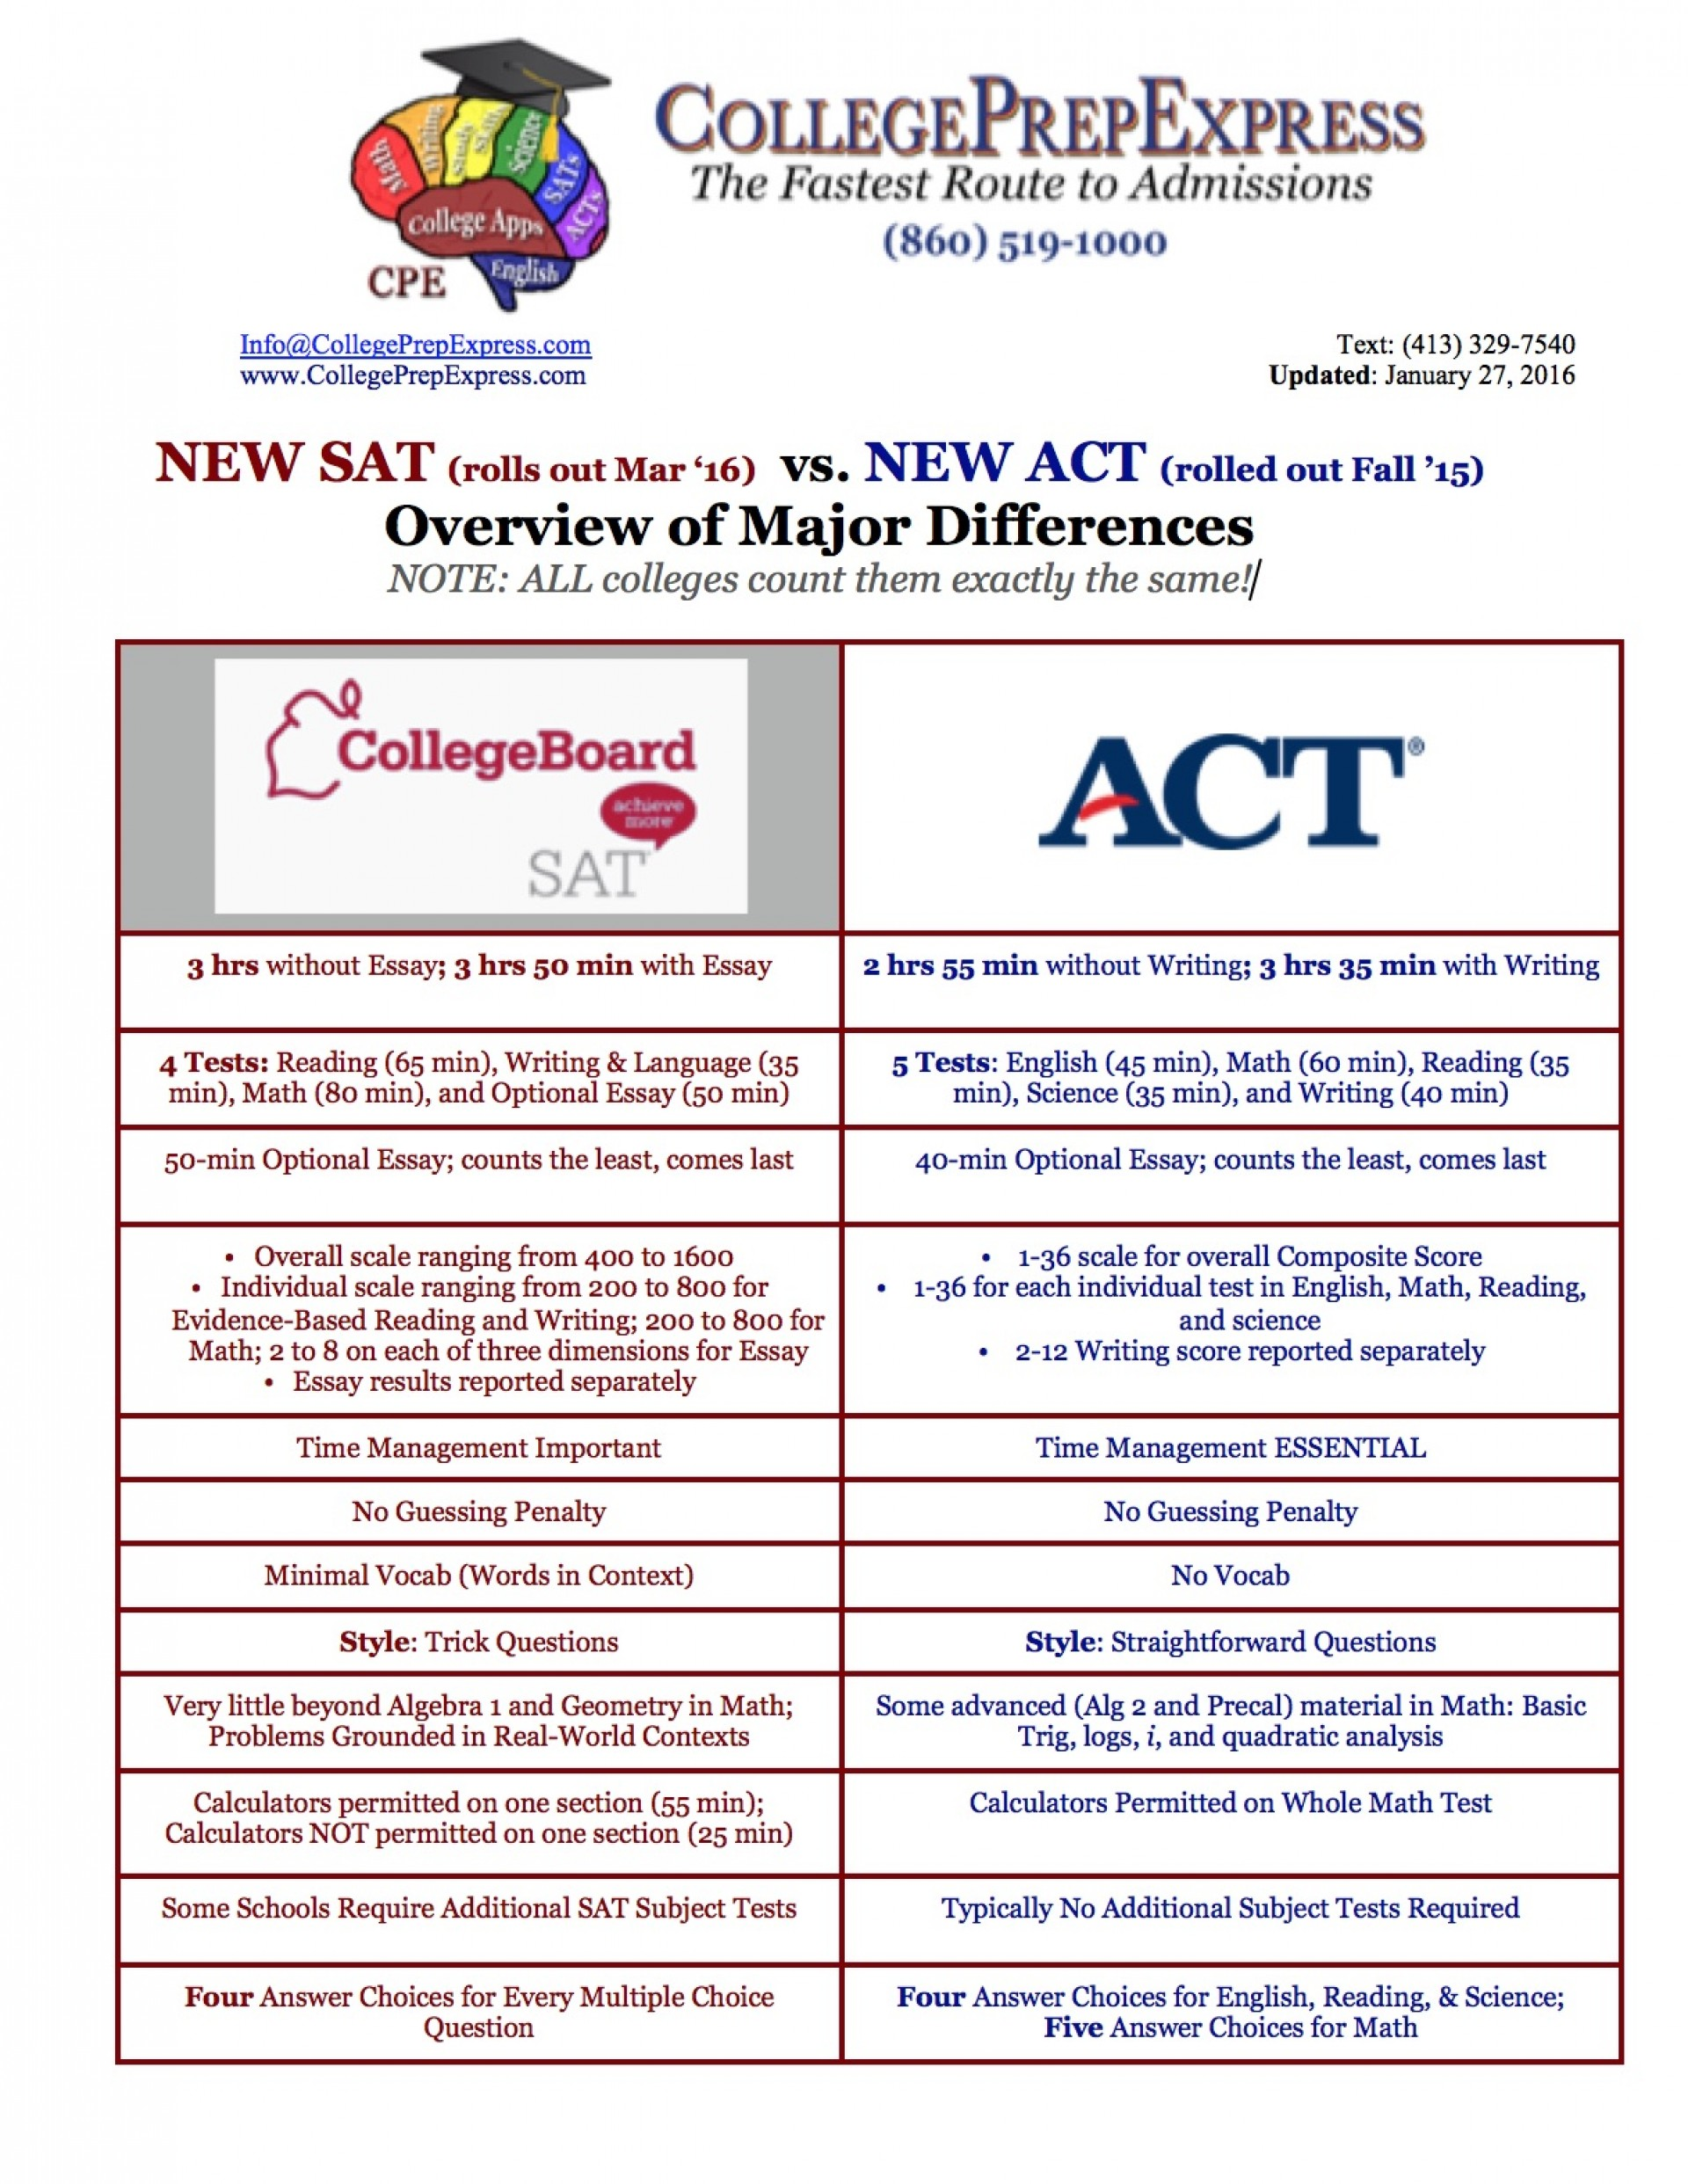 011 New Sat Essay Vs Act Overview Of Major Differences Unforgettable Score Distribution Template Pdf 1920